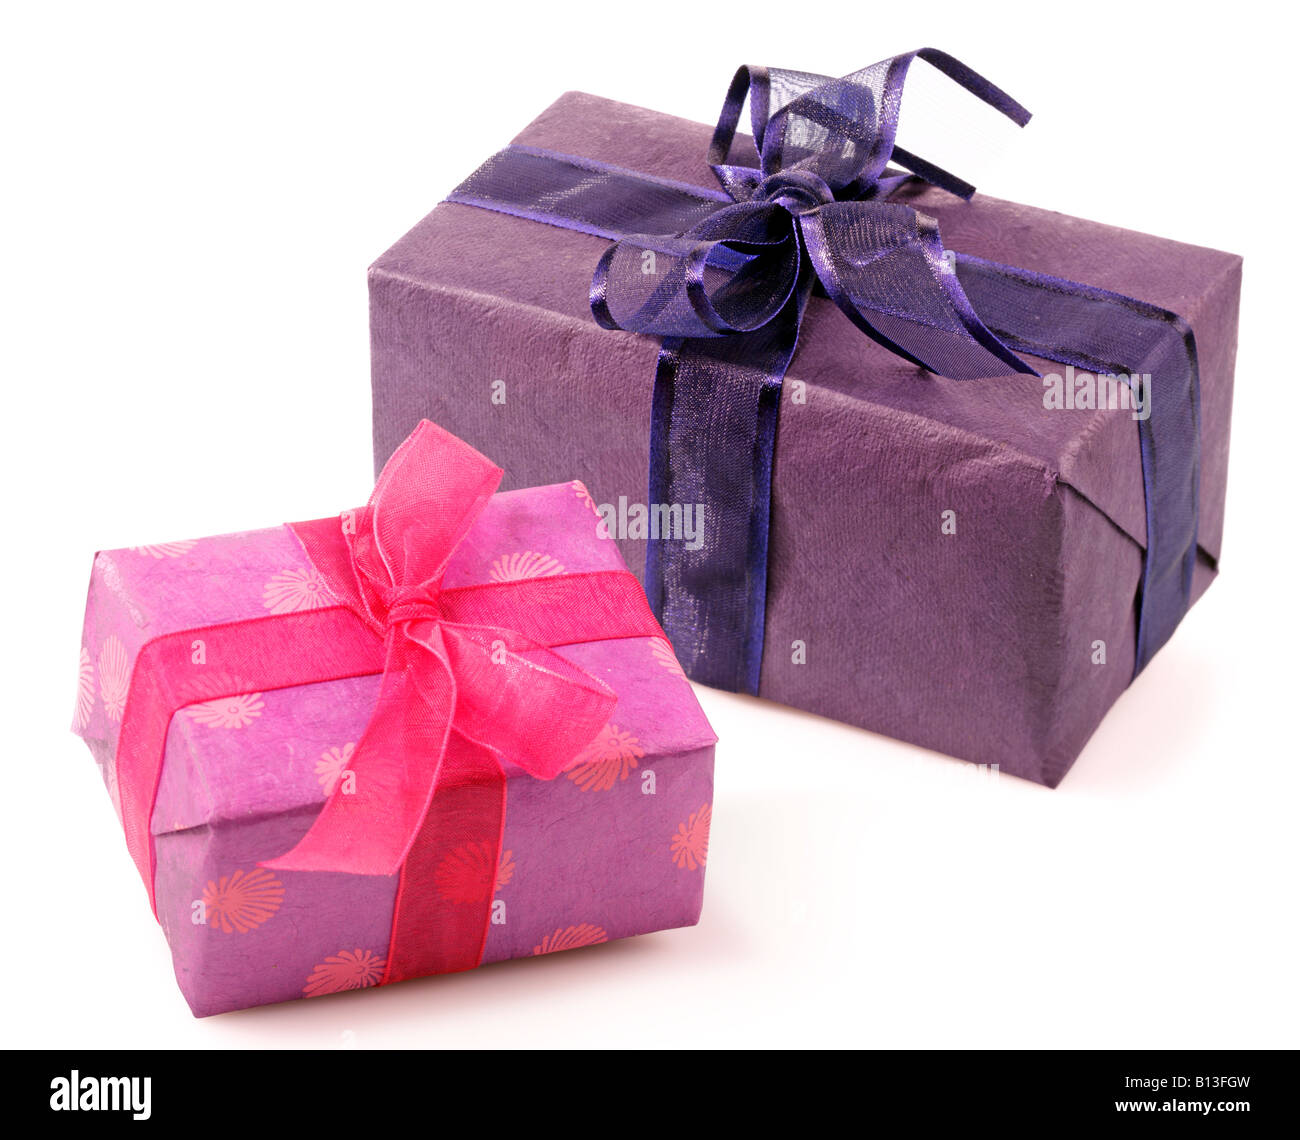 TWO WRAPPED GIFTS Stock Photo: 17903113 - Alamy